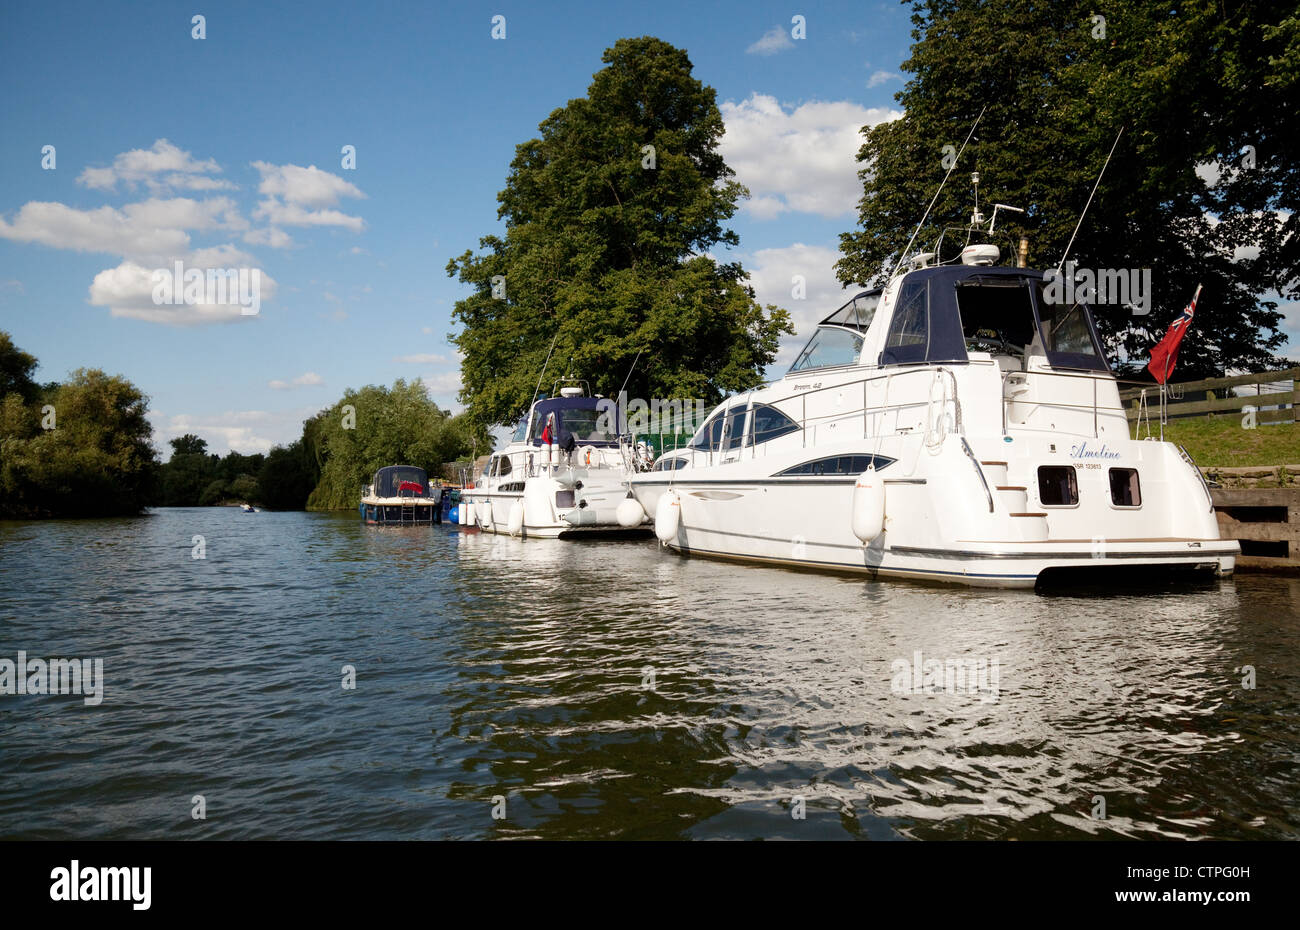 motor cruisers moored on the River Thames at Wallingford Oxfordshire UK - Stock Image